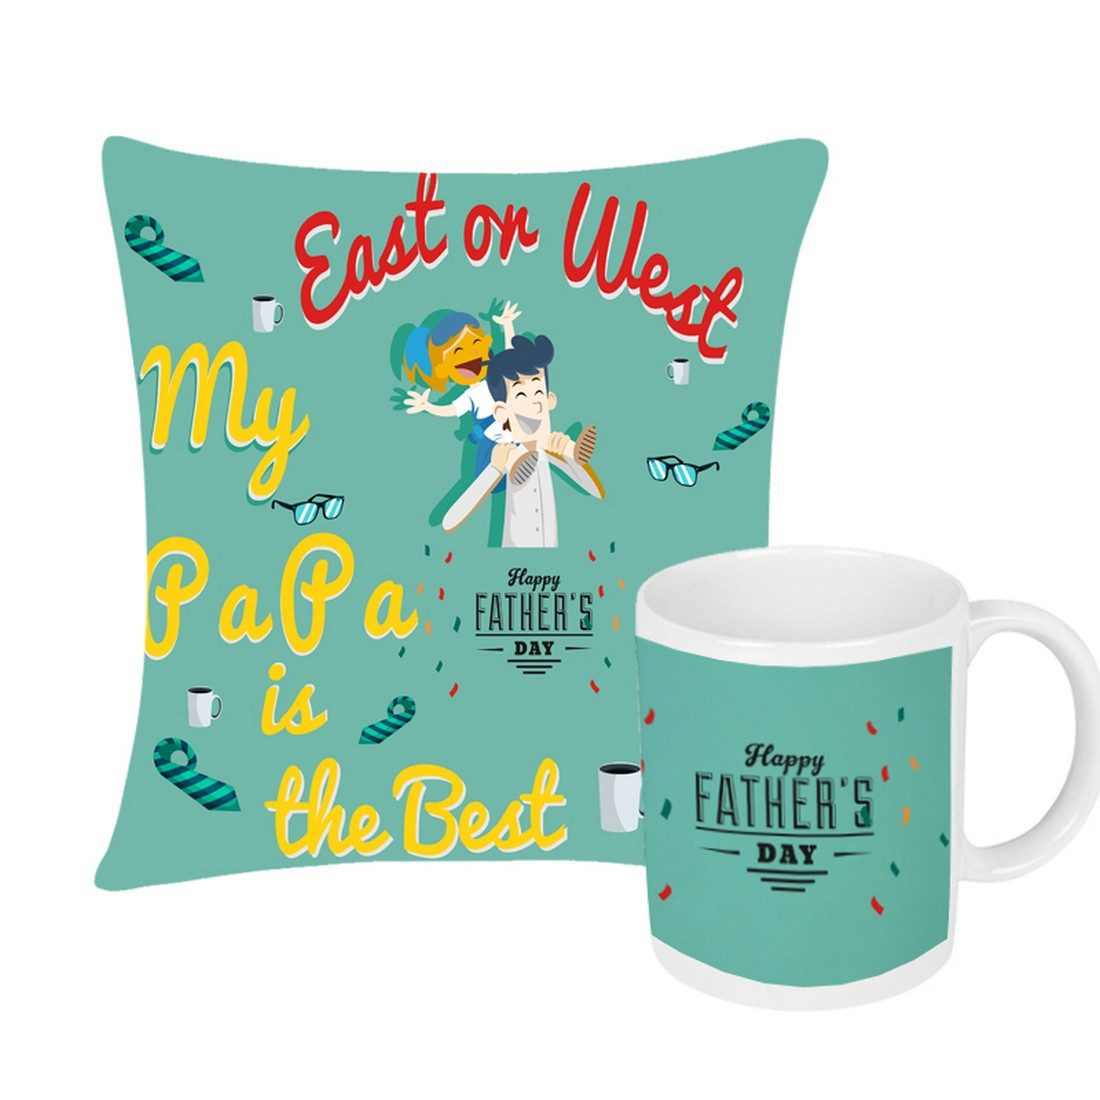 Sattva Combo Premium Printed Cushion Cover With Filler 16 X16 Inches & Ceramic Mug 350 ML EVSCOCM06 For Father's Day